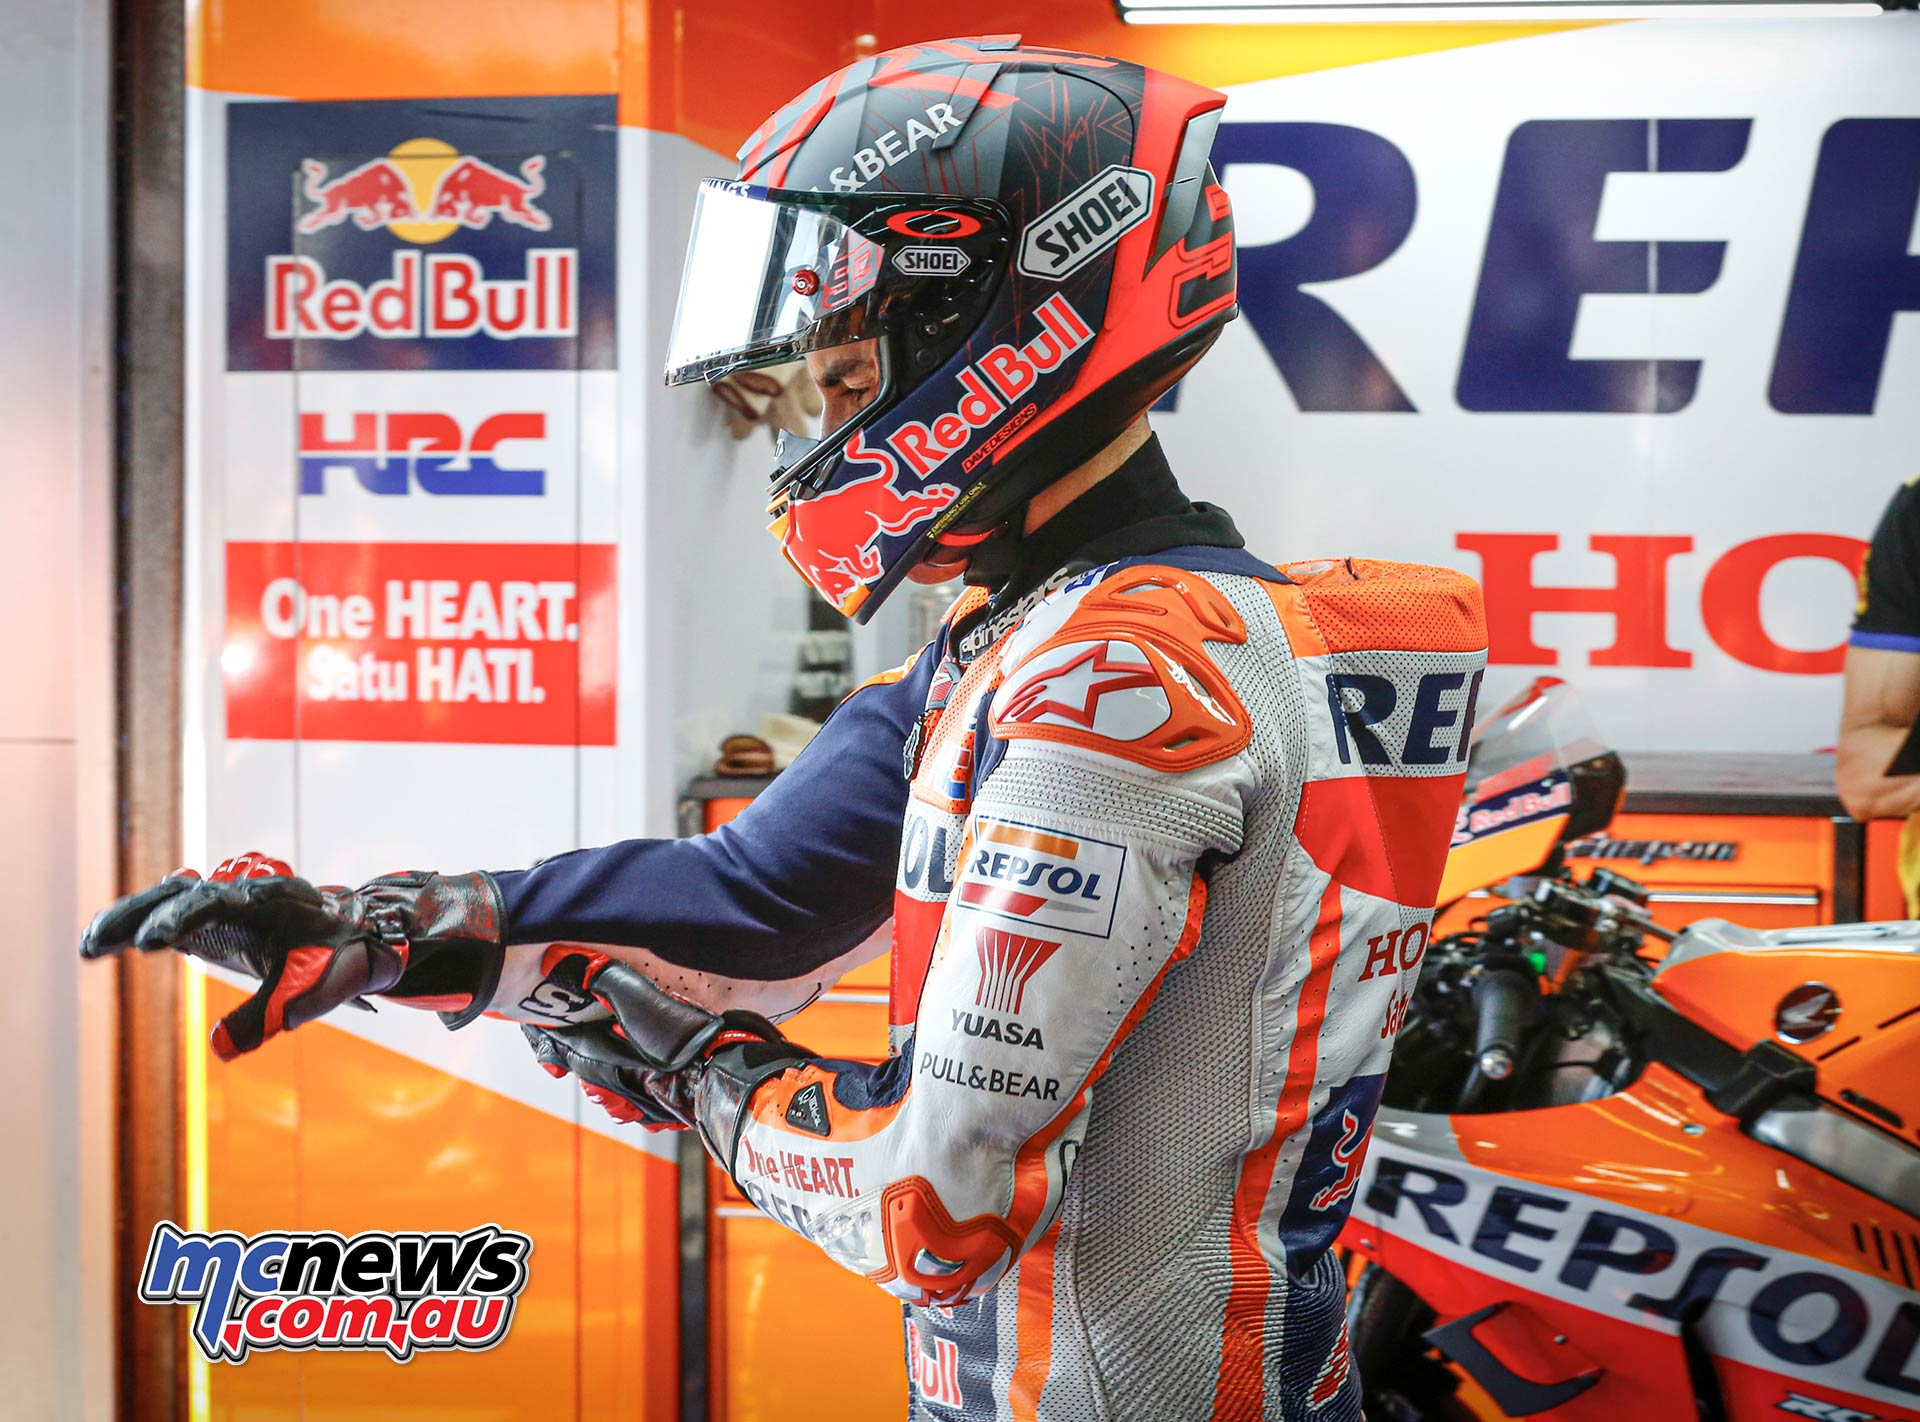 Marquez And Puig Explain Withdrawal Motorcycle News Sport And Reviews